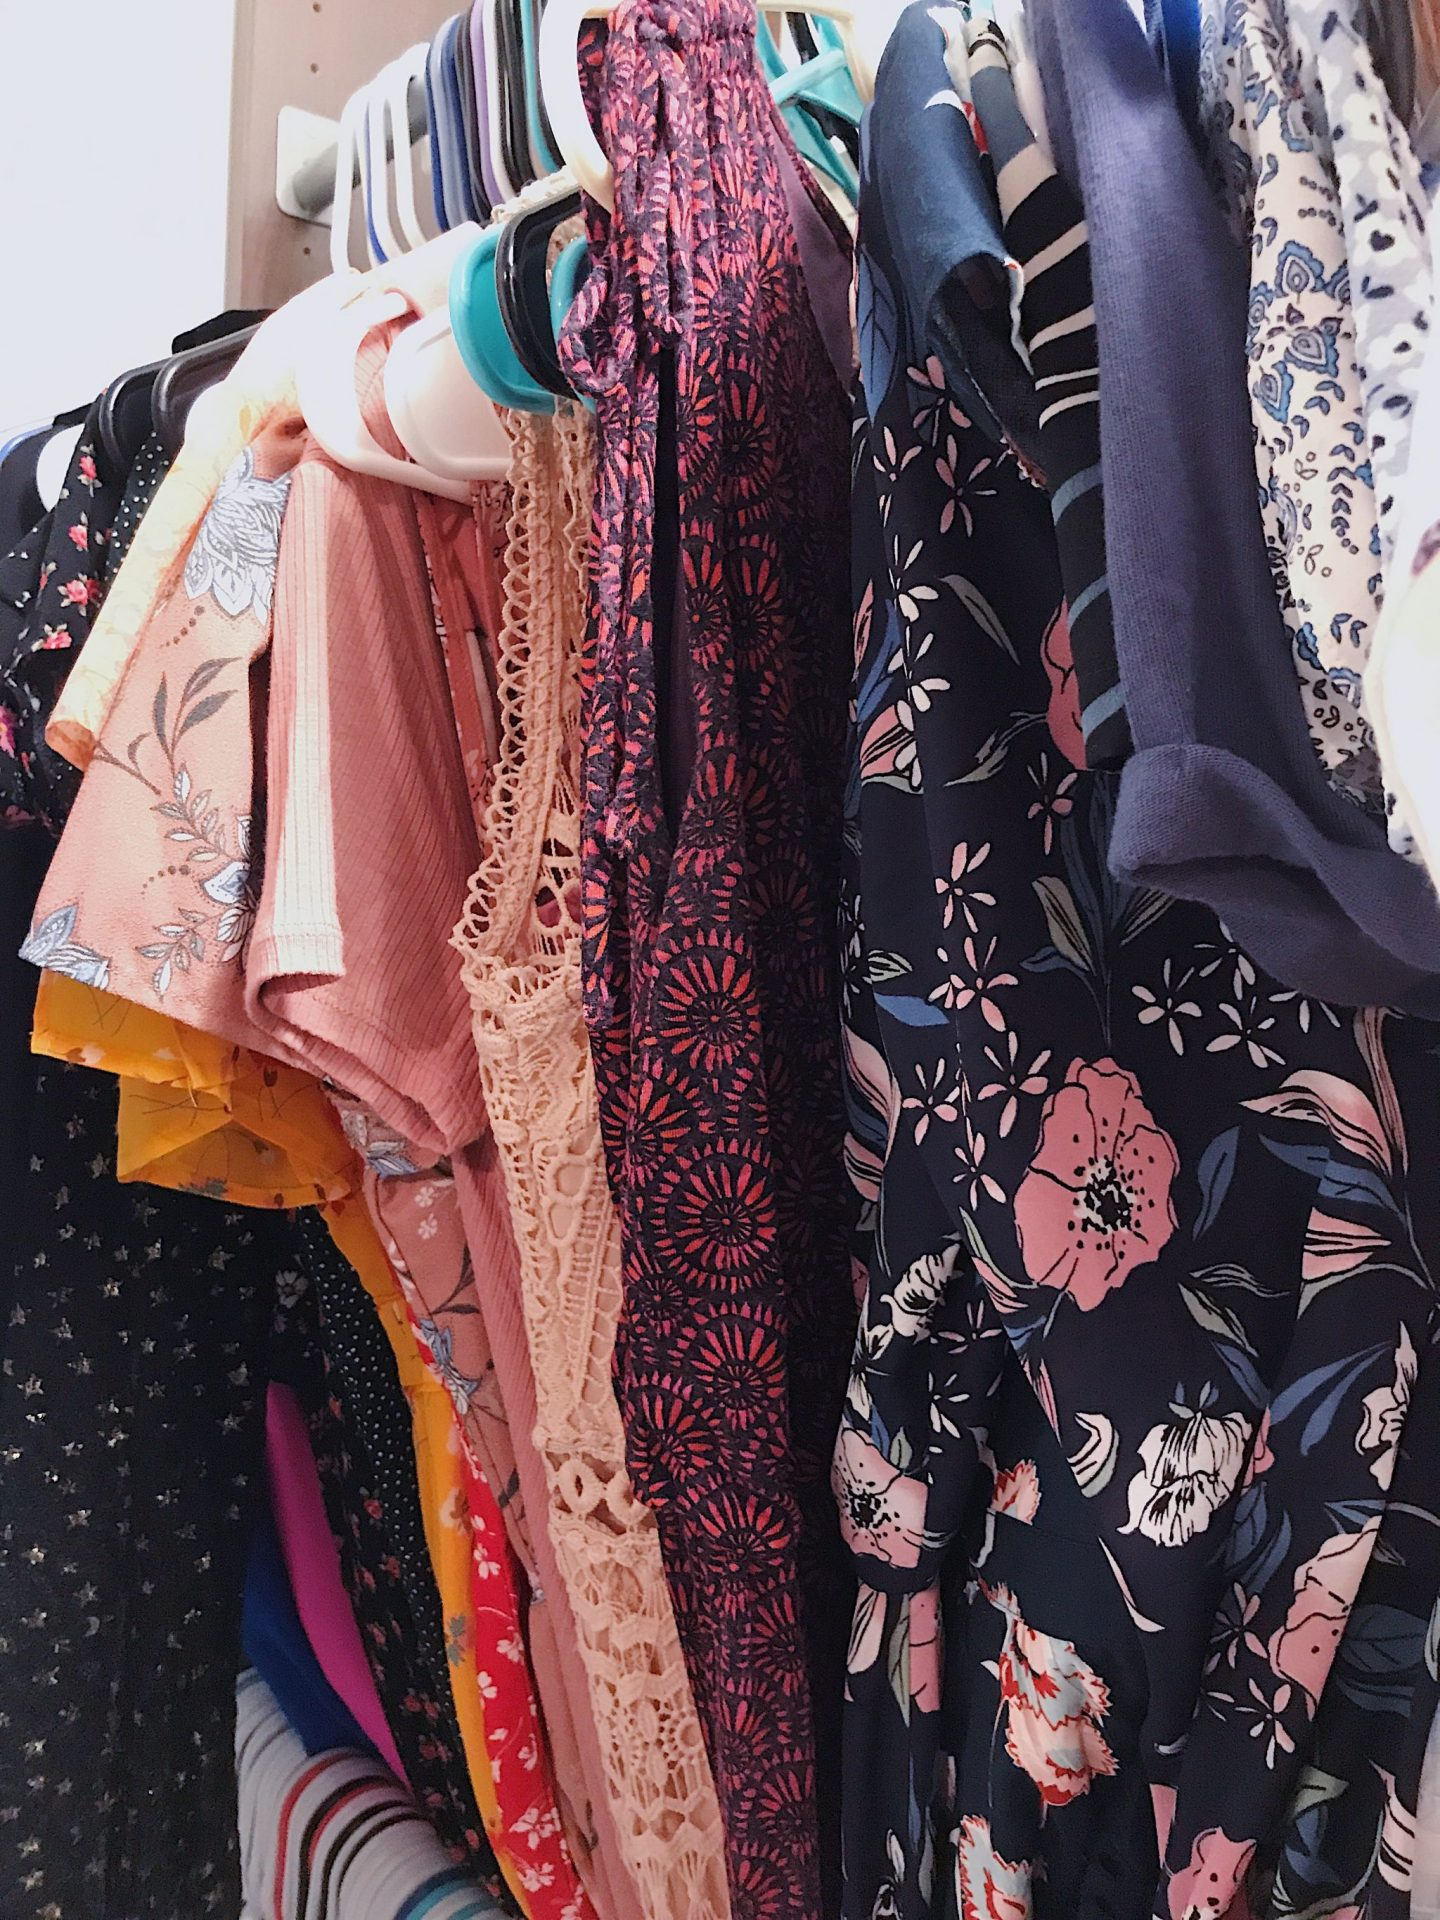 Dresses in reorganized closet